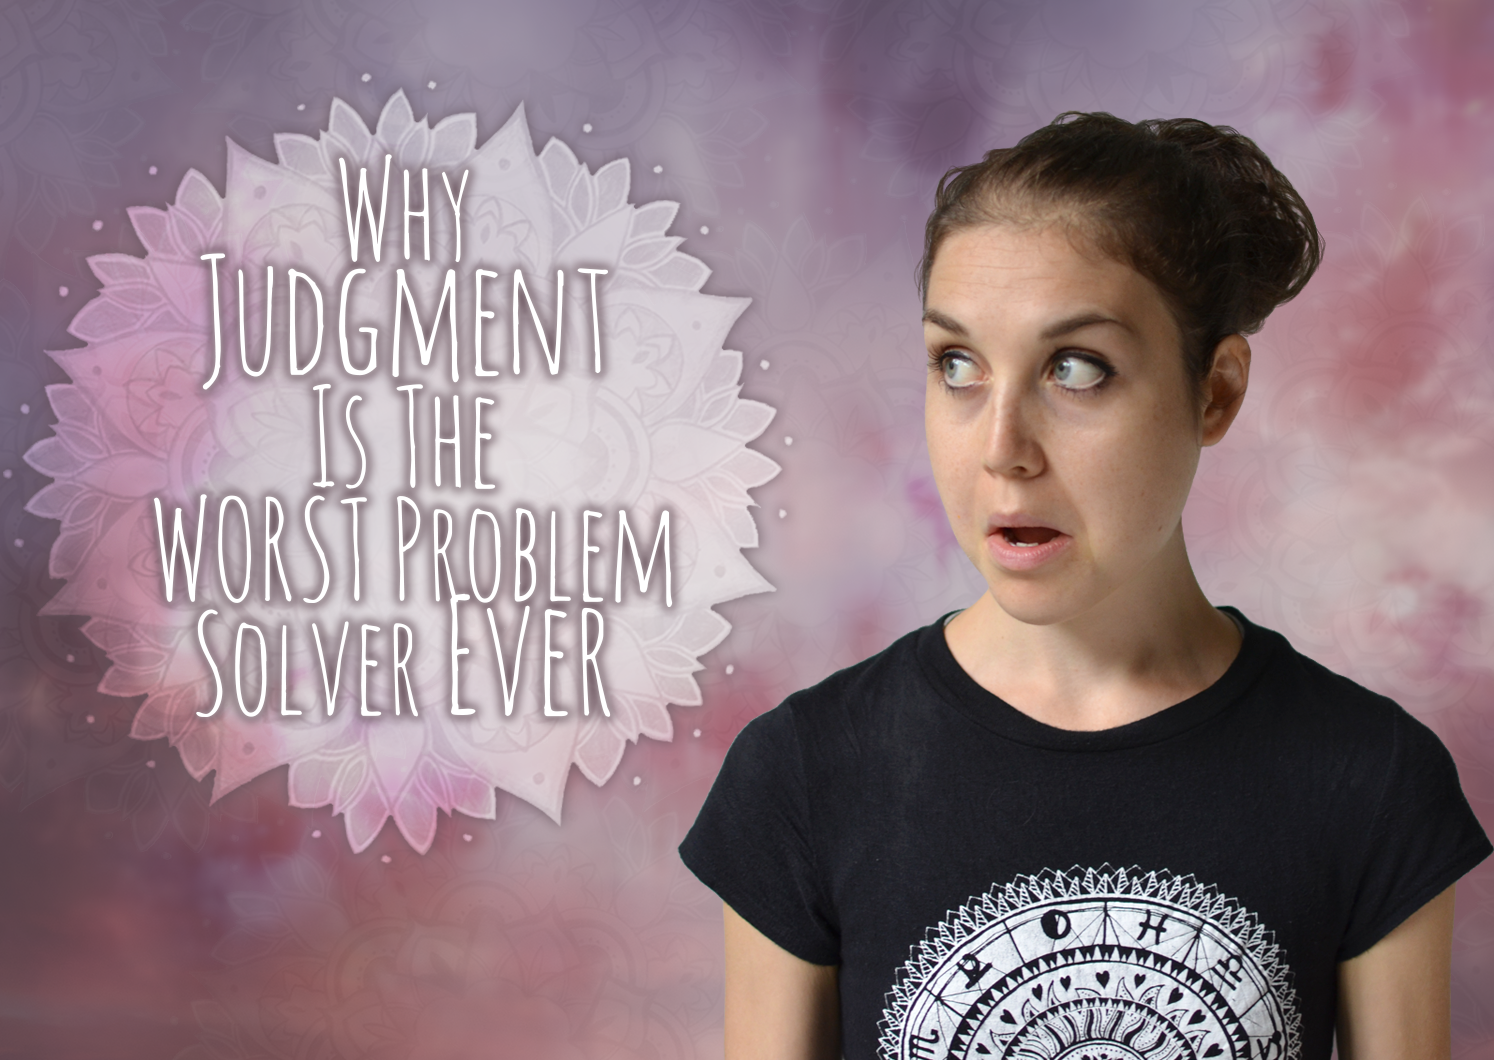 Why Judgement Is The WORST Problem Solver Ever